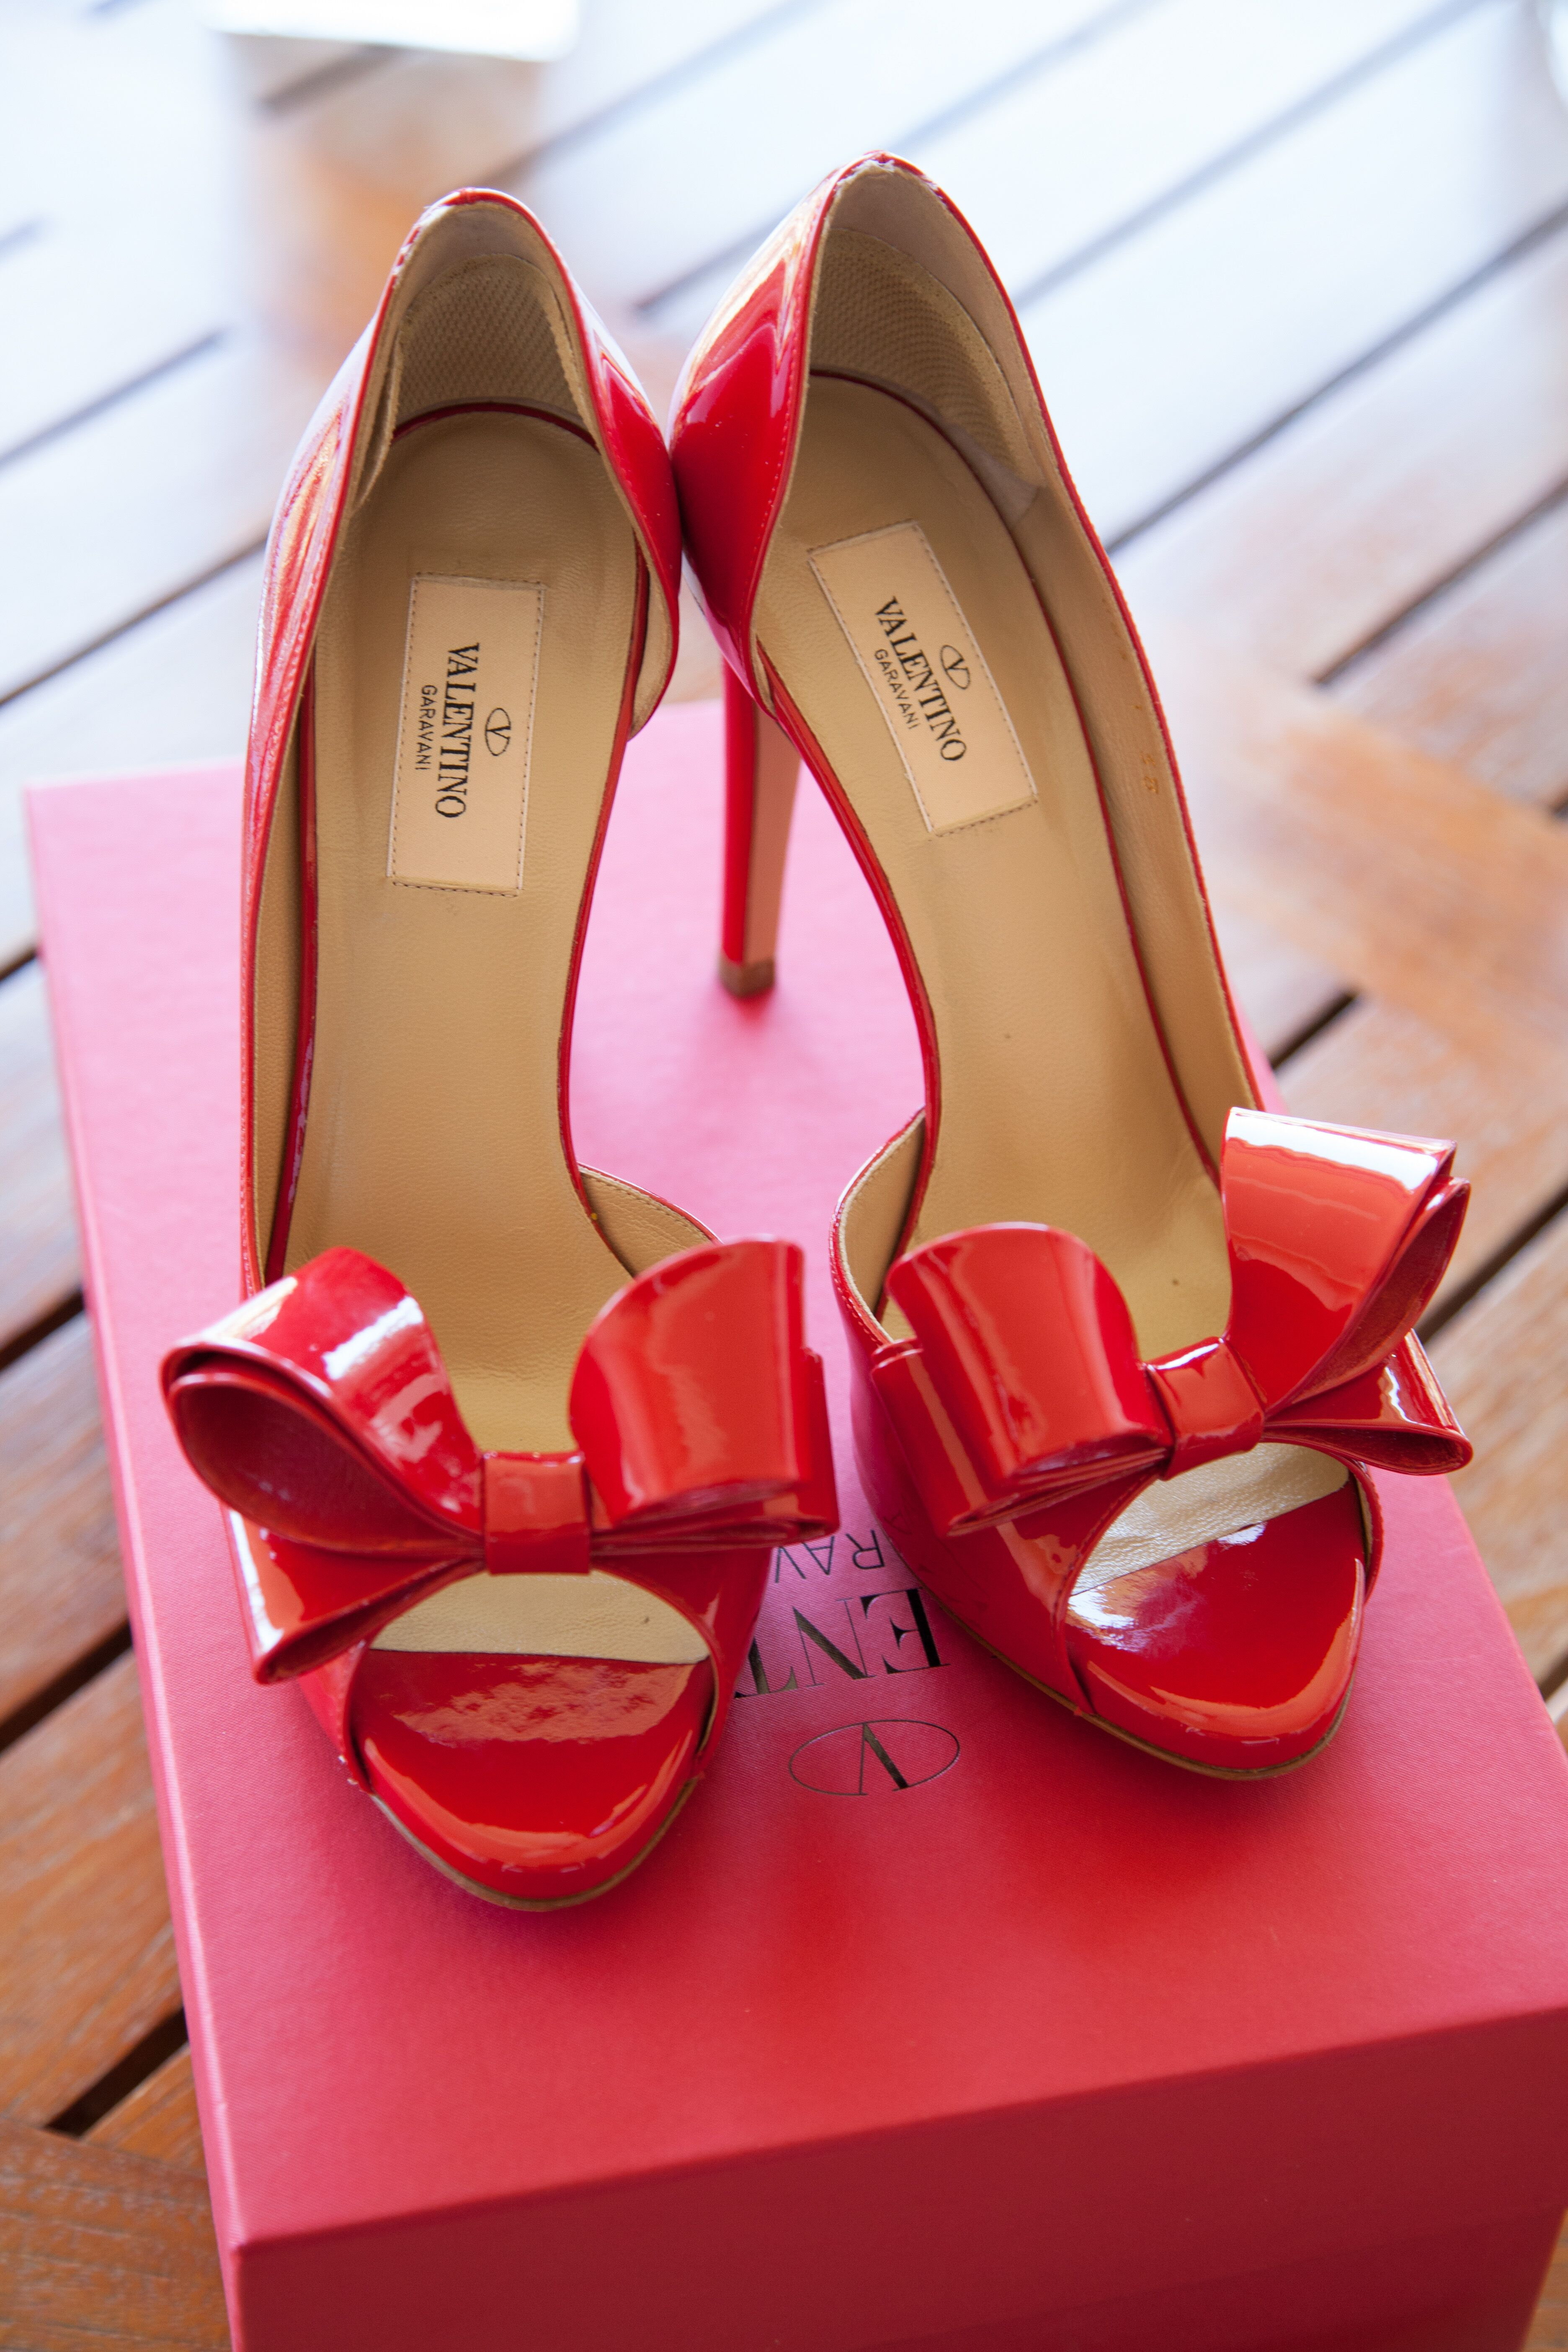 With Detail Valentino Shoes Bow Red 5R3jLA4